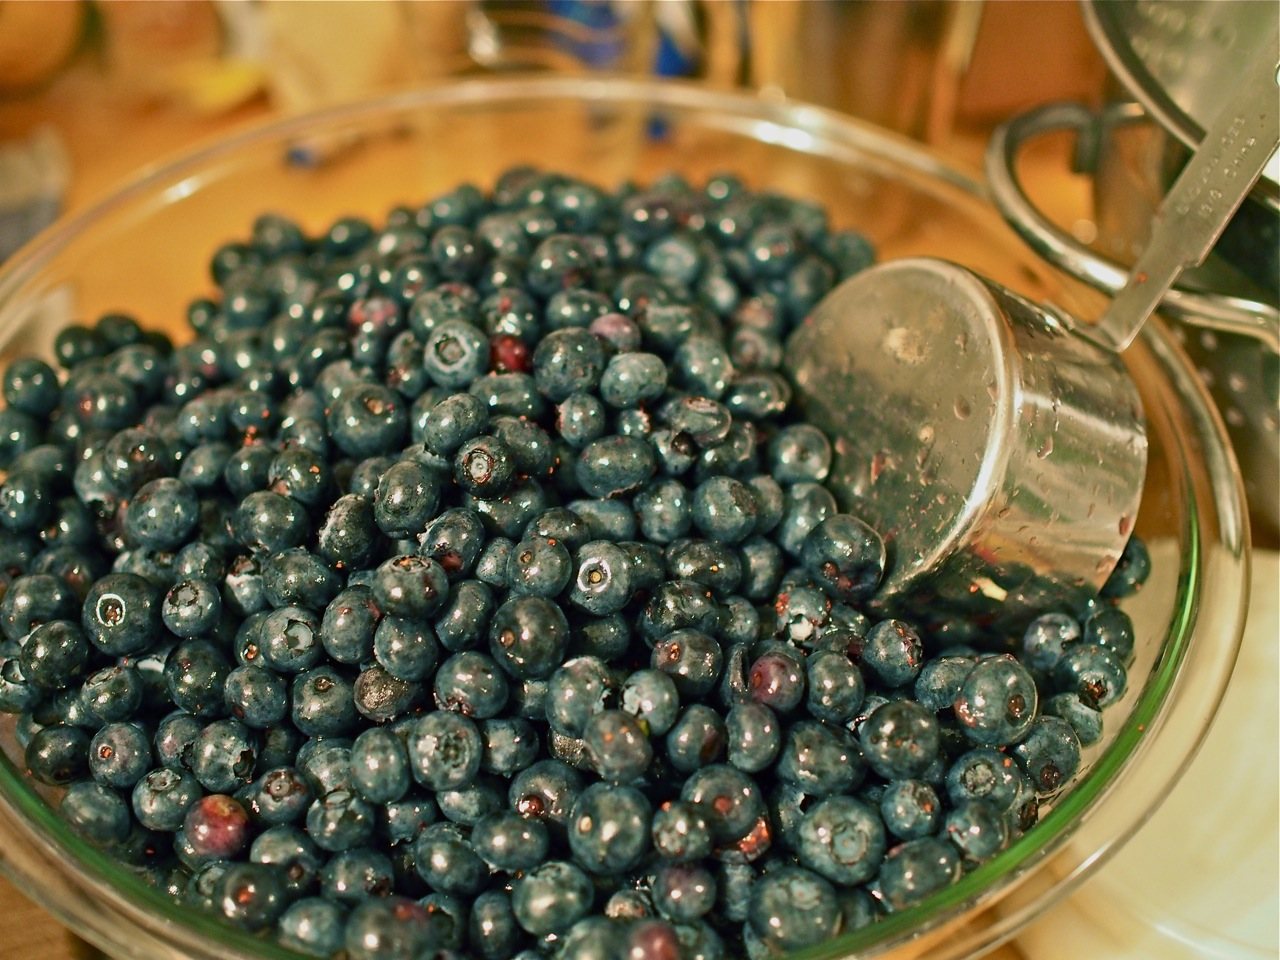 Cleaning blueberries